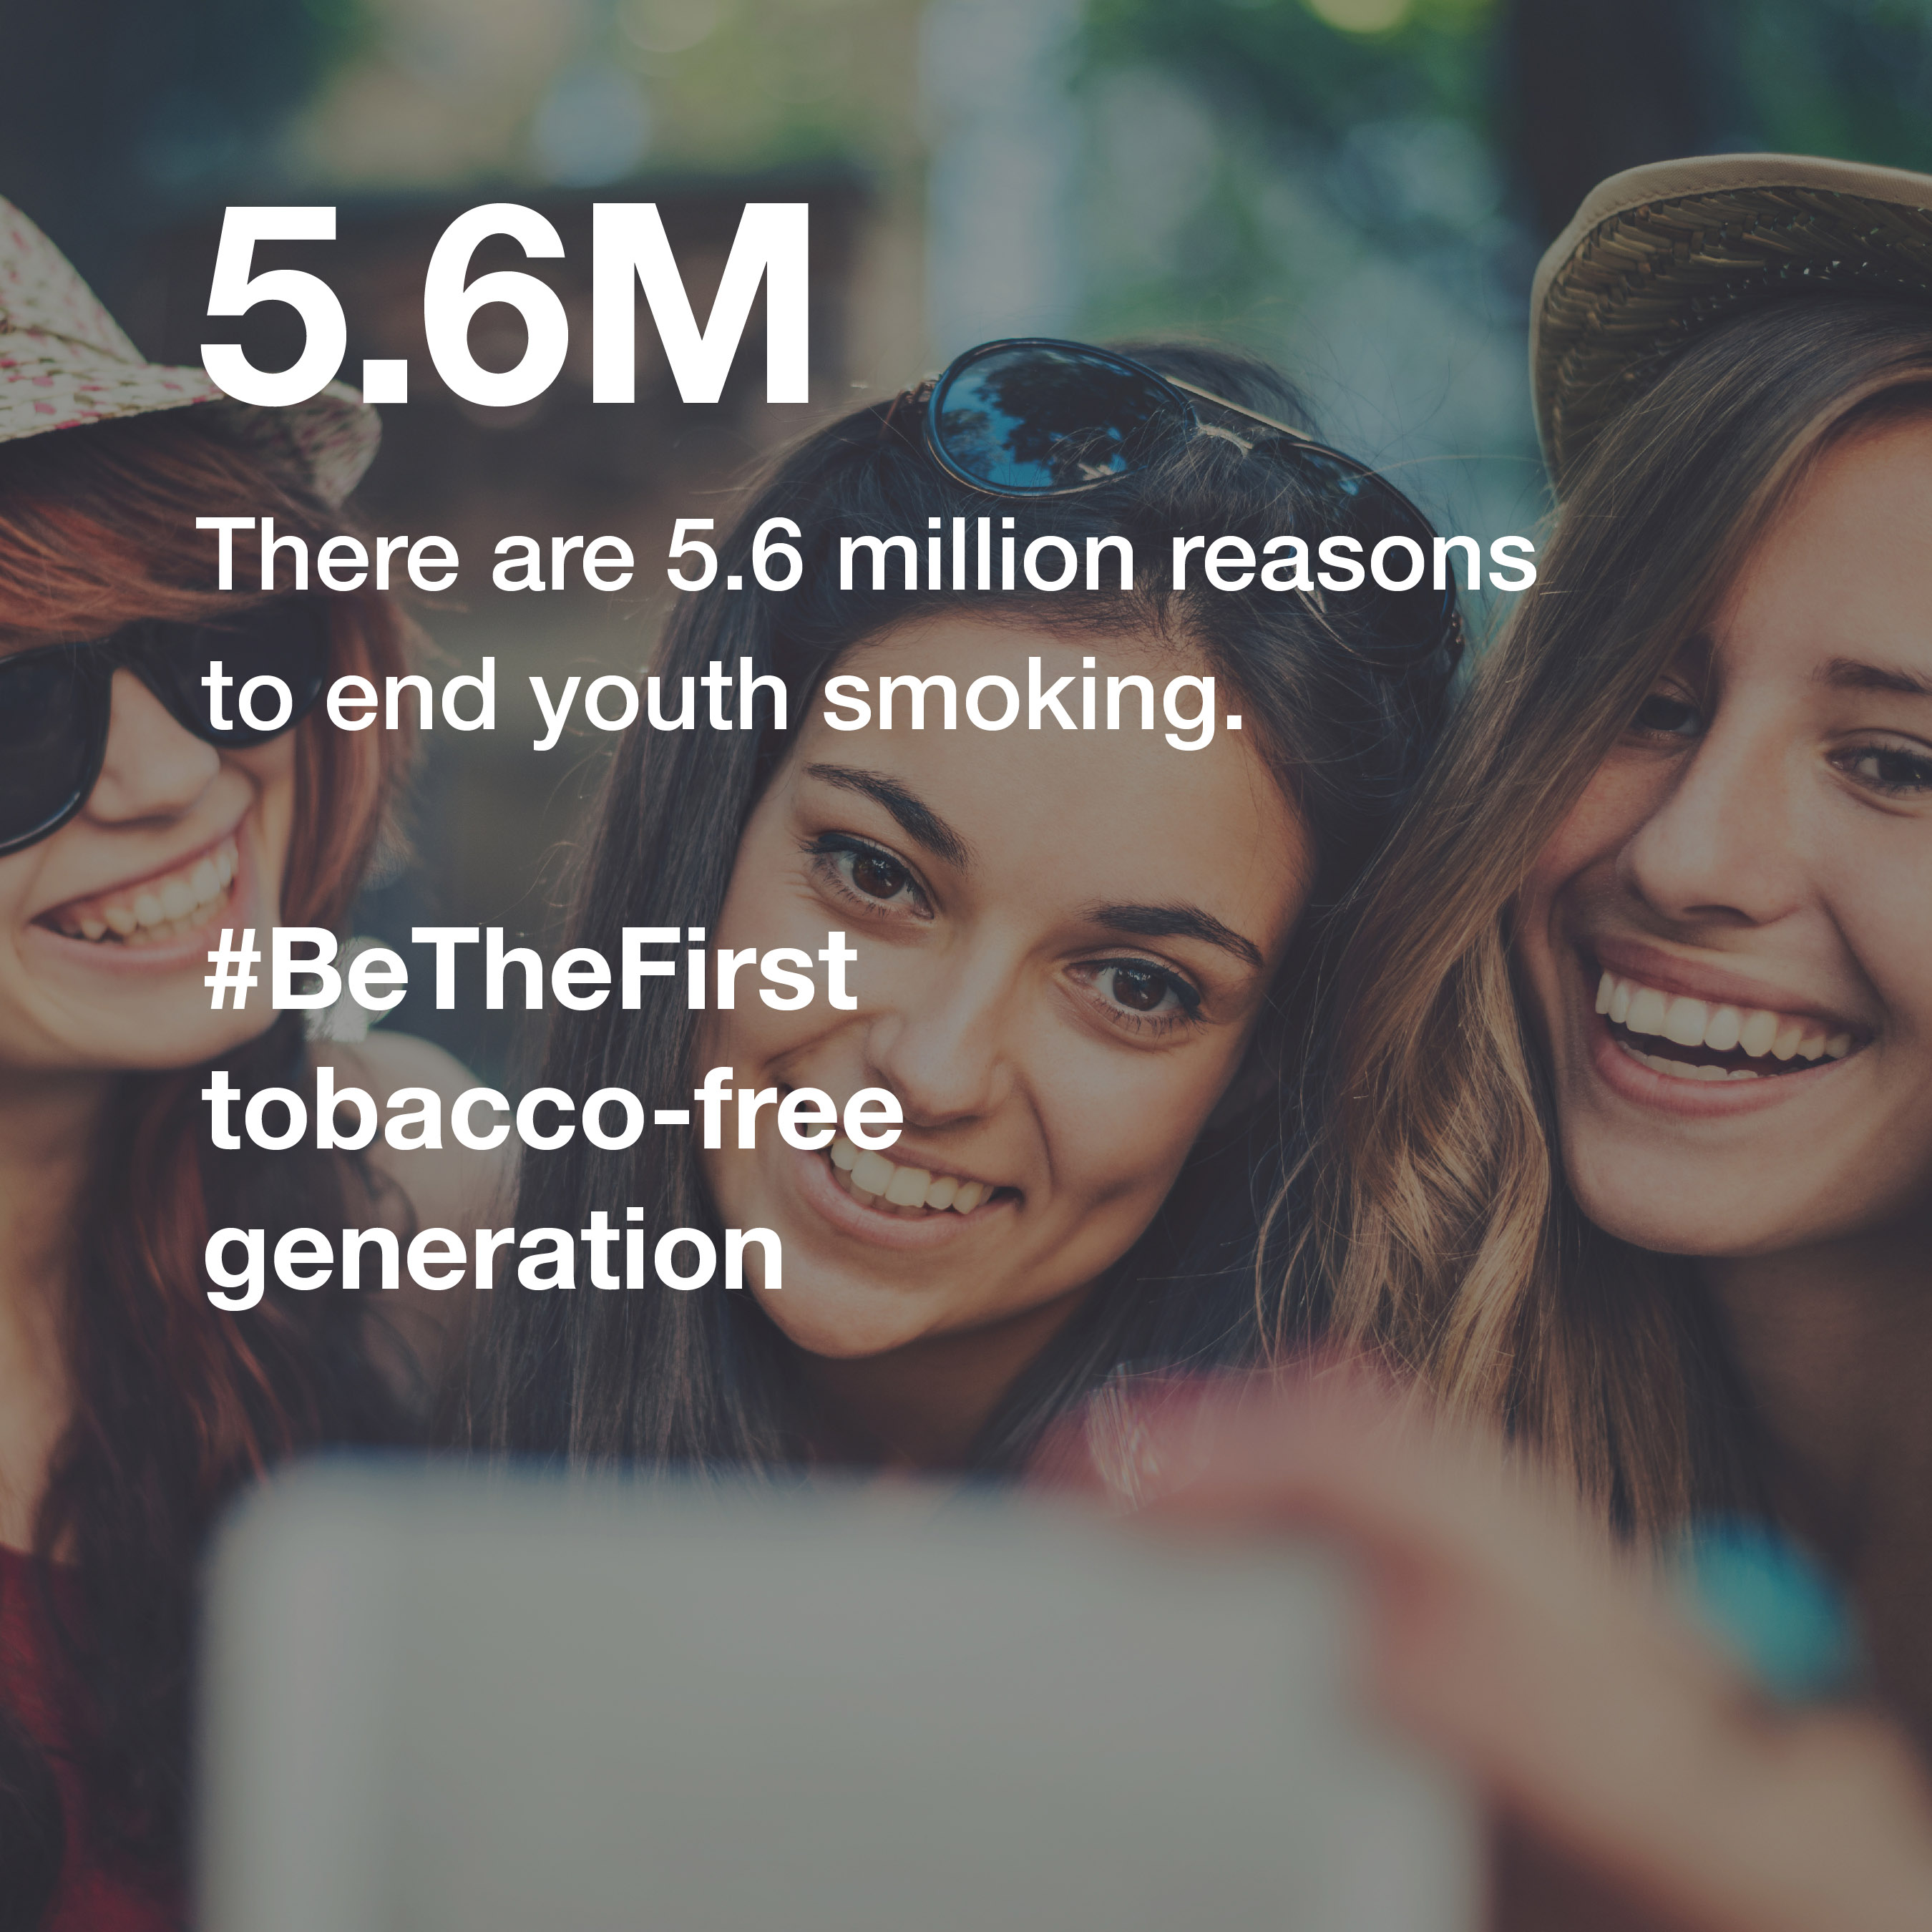 There are 5.6 million reasons to end youth smoking. #BeTheFirst tobacco-free generation.